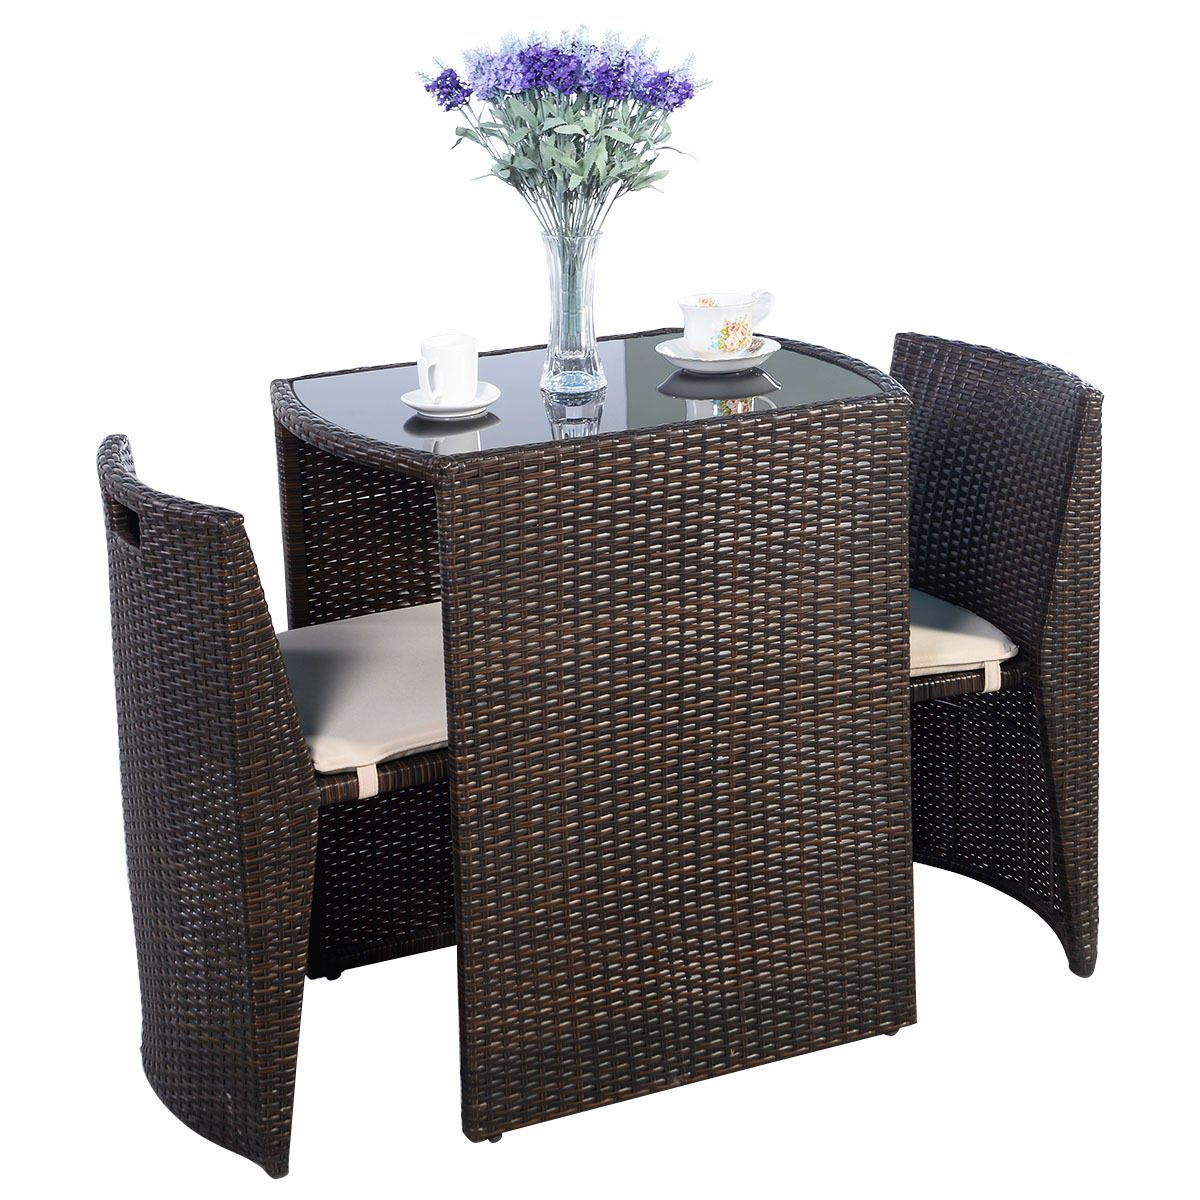 Outdoor Furniture – Patio Wicker Dining Table and Chairs With Cushions Set 3 Piece – All-Weather – Great for Backyard Porch Garden and Balcony – Brown – by Global Group